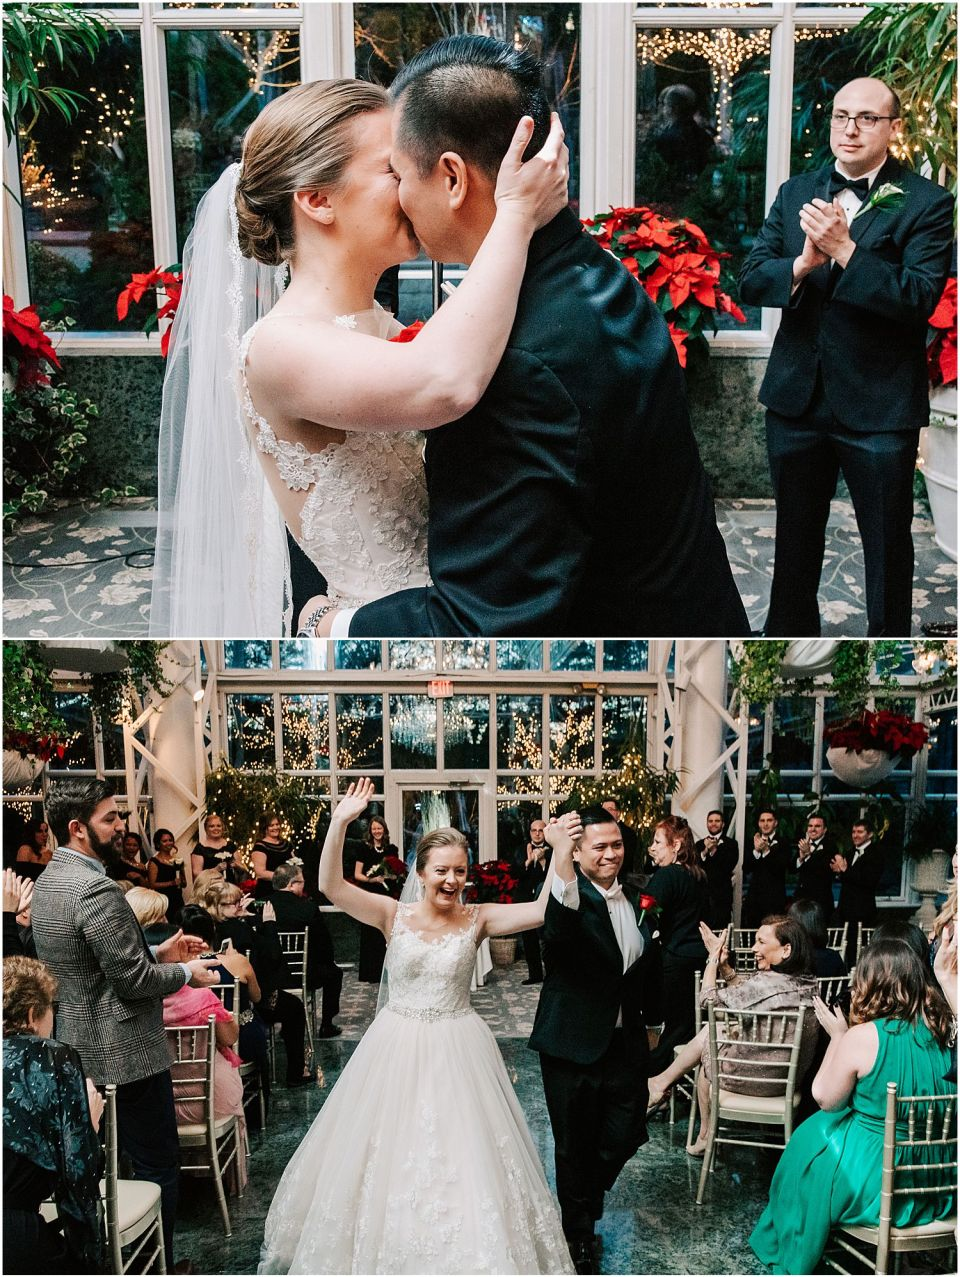 First kiss at the Madison Hotel wedding venue